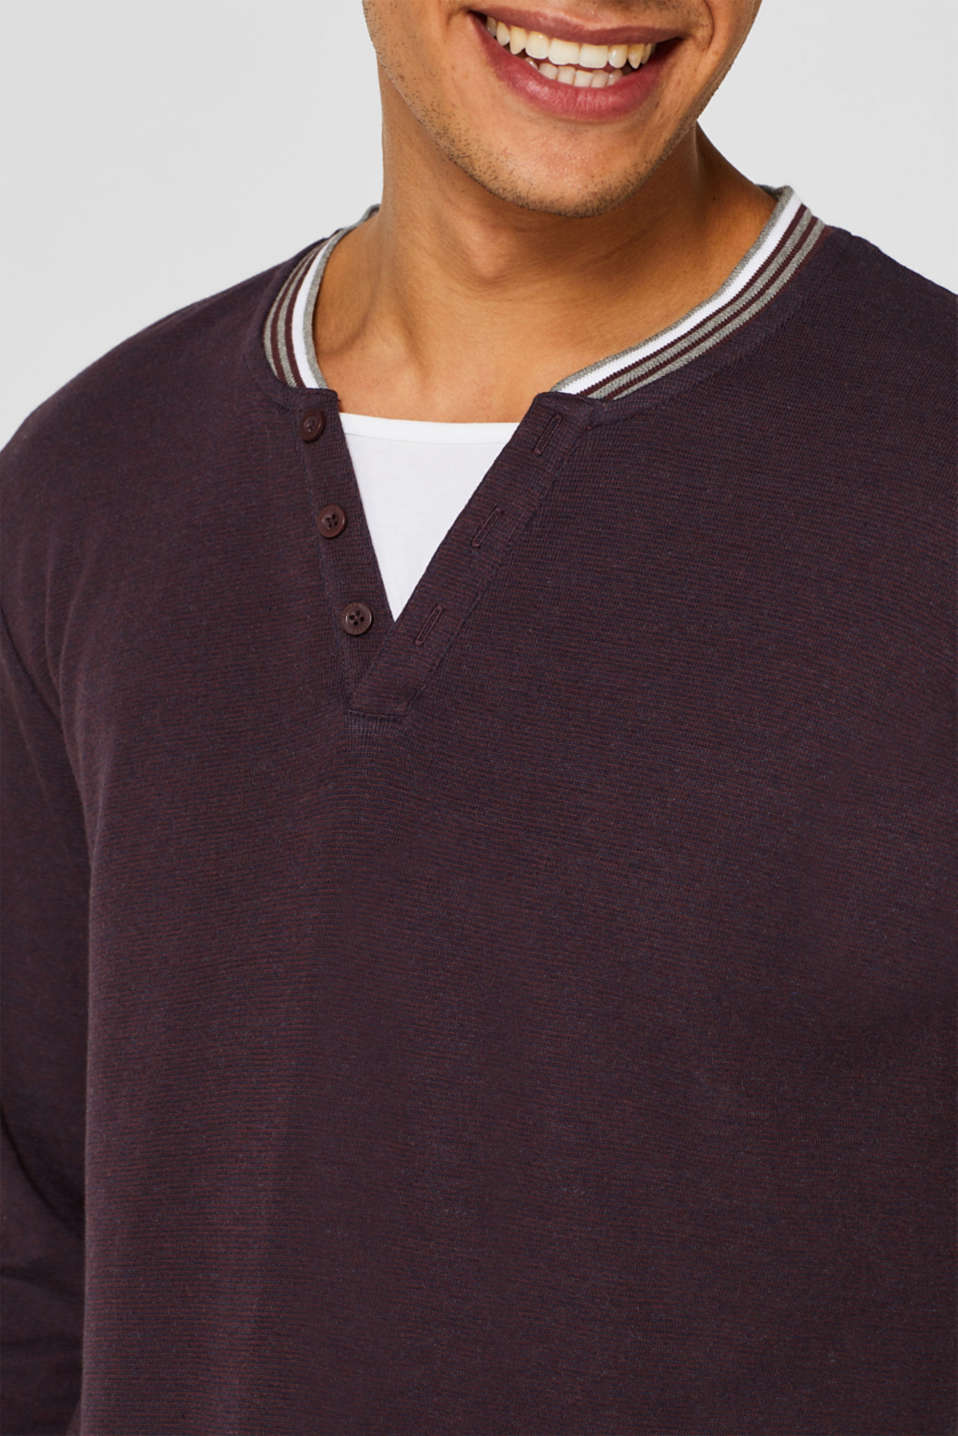 Long sleeve jersey top in a layered look, BORDEAUX RED, detail image number 6